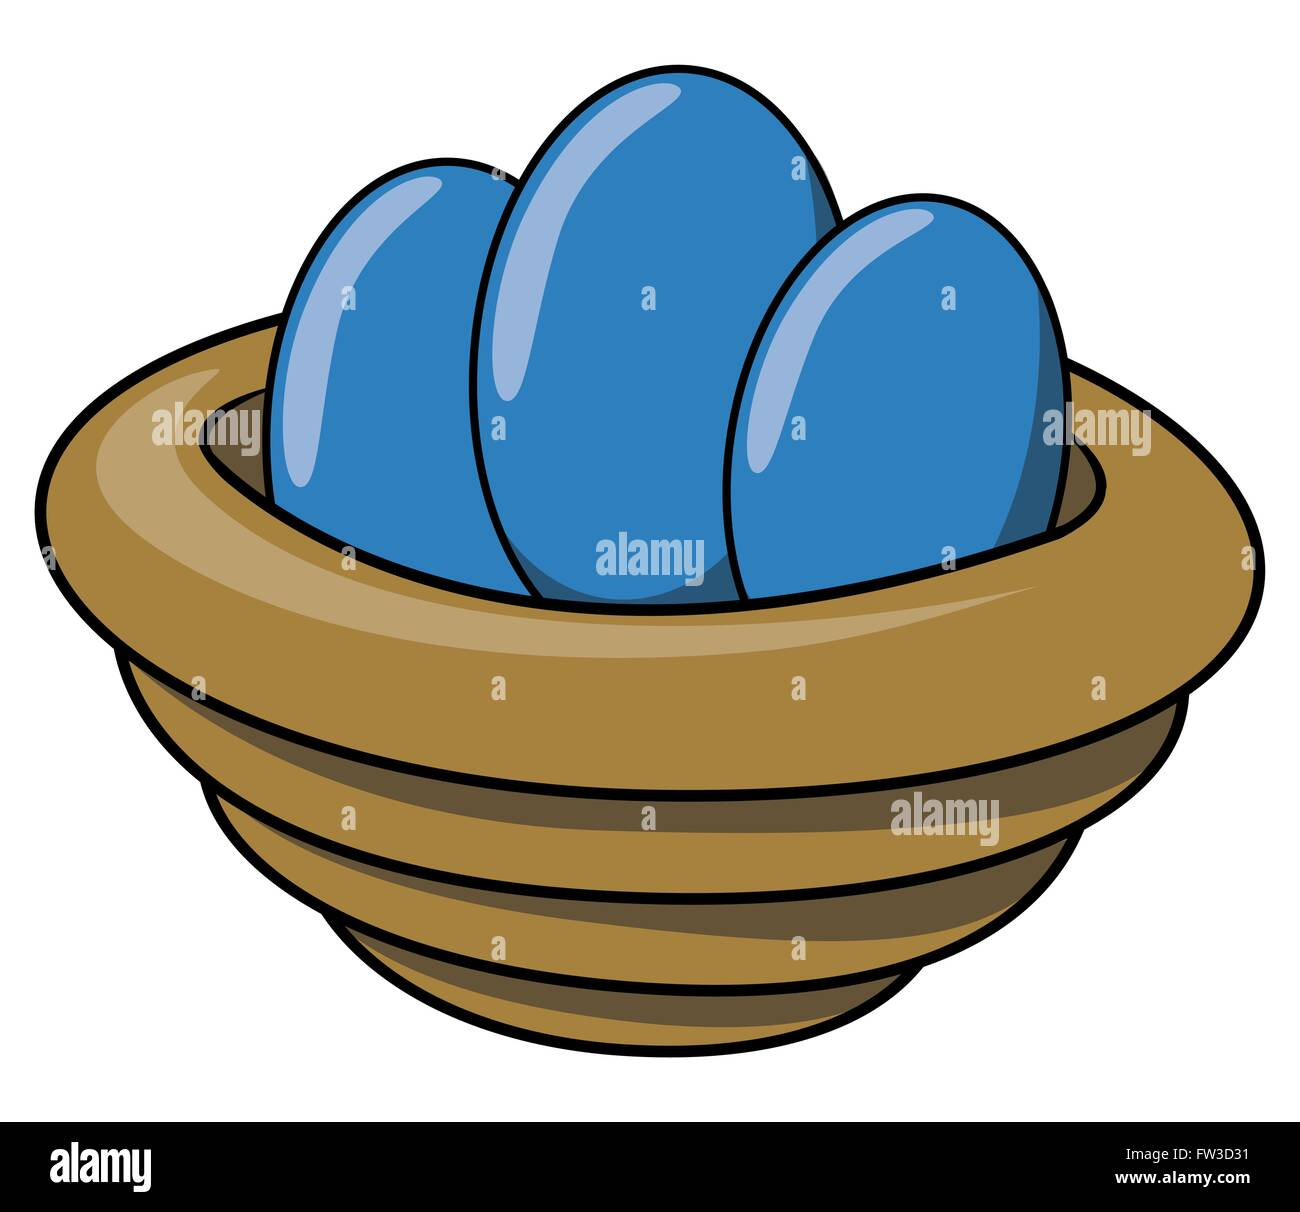 cartoon blue eggs in bowl stock vector art u0026 illustration vector